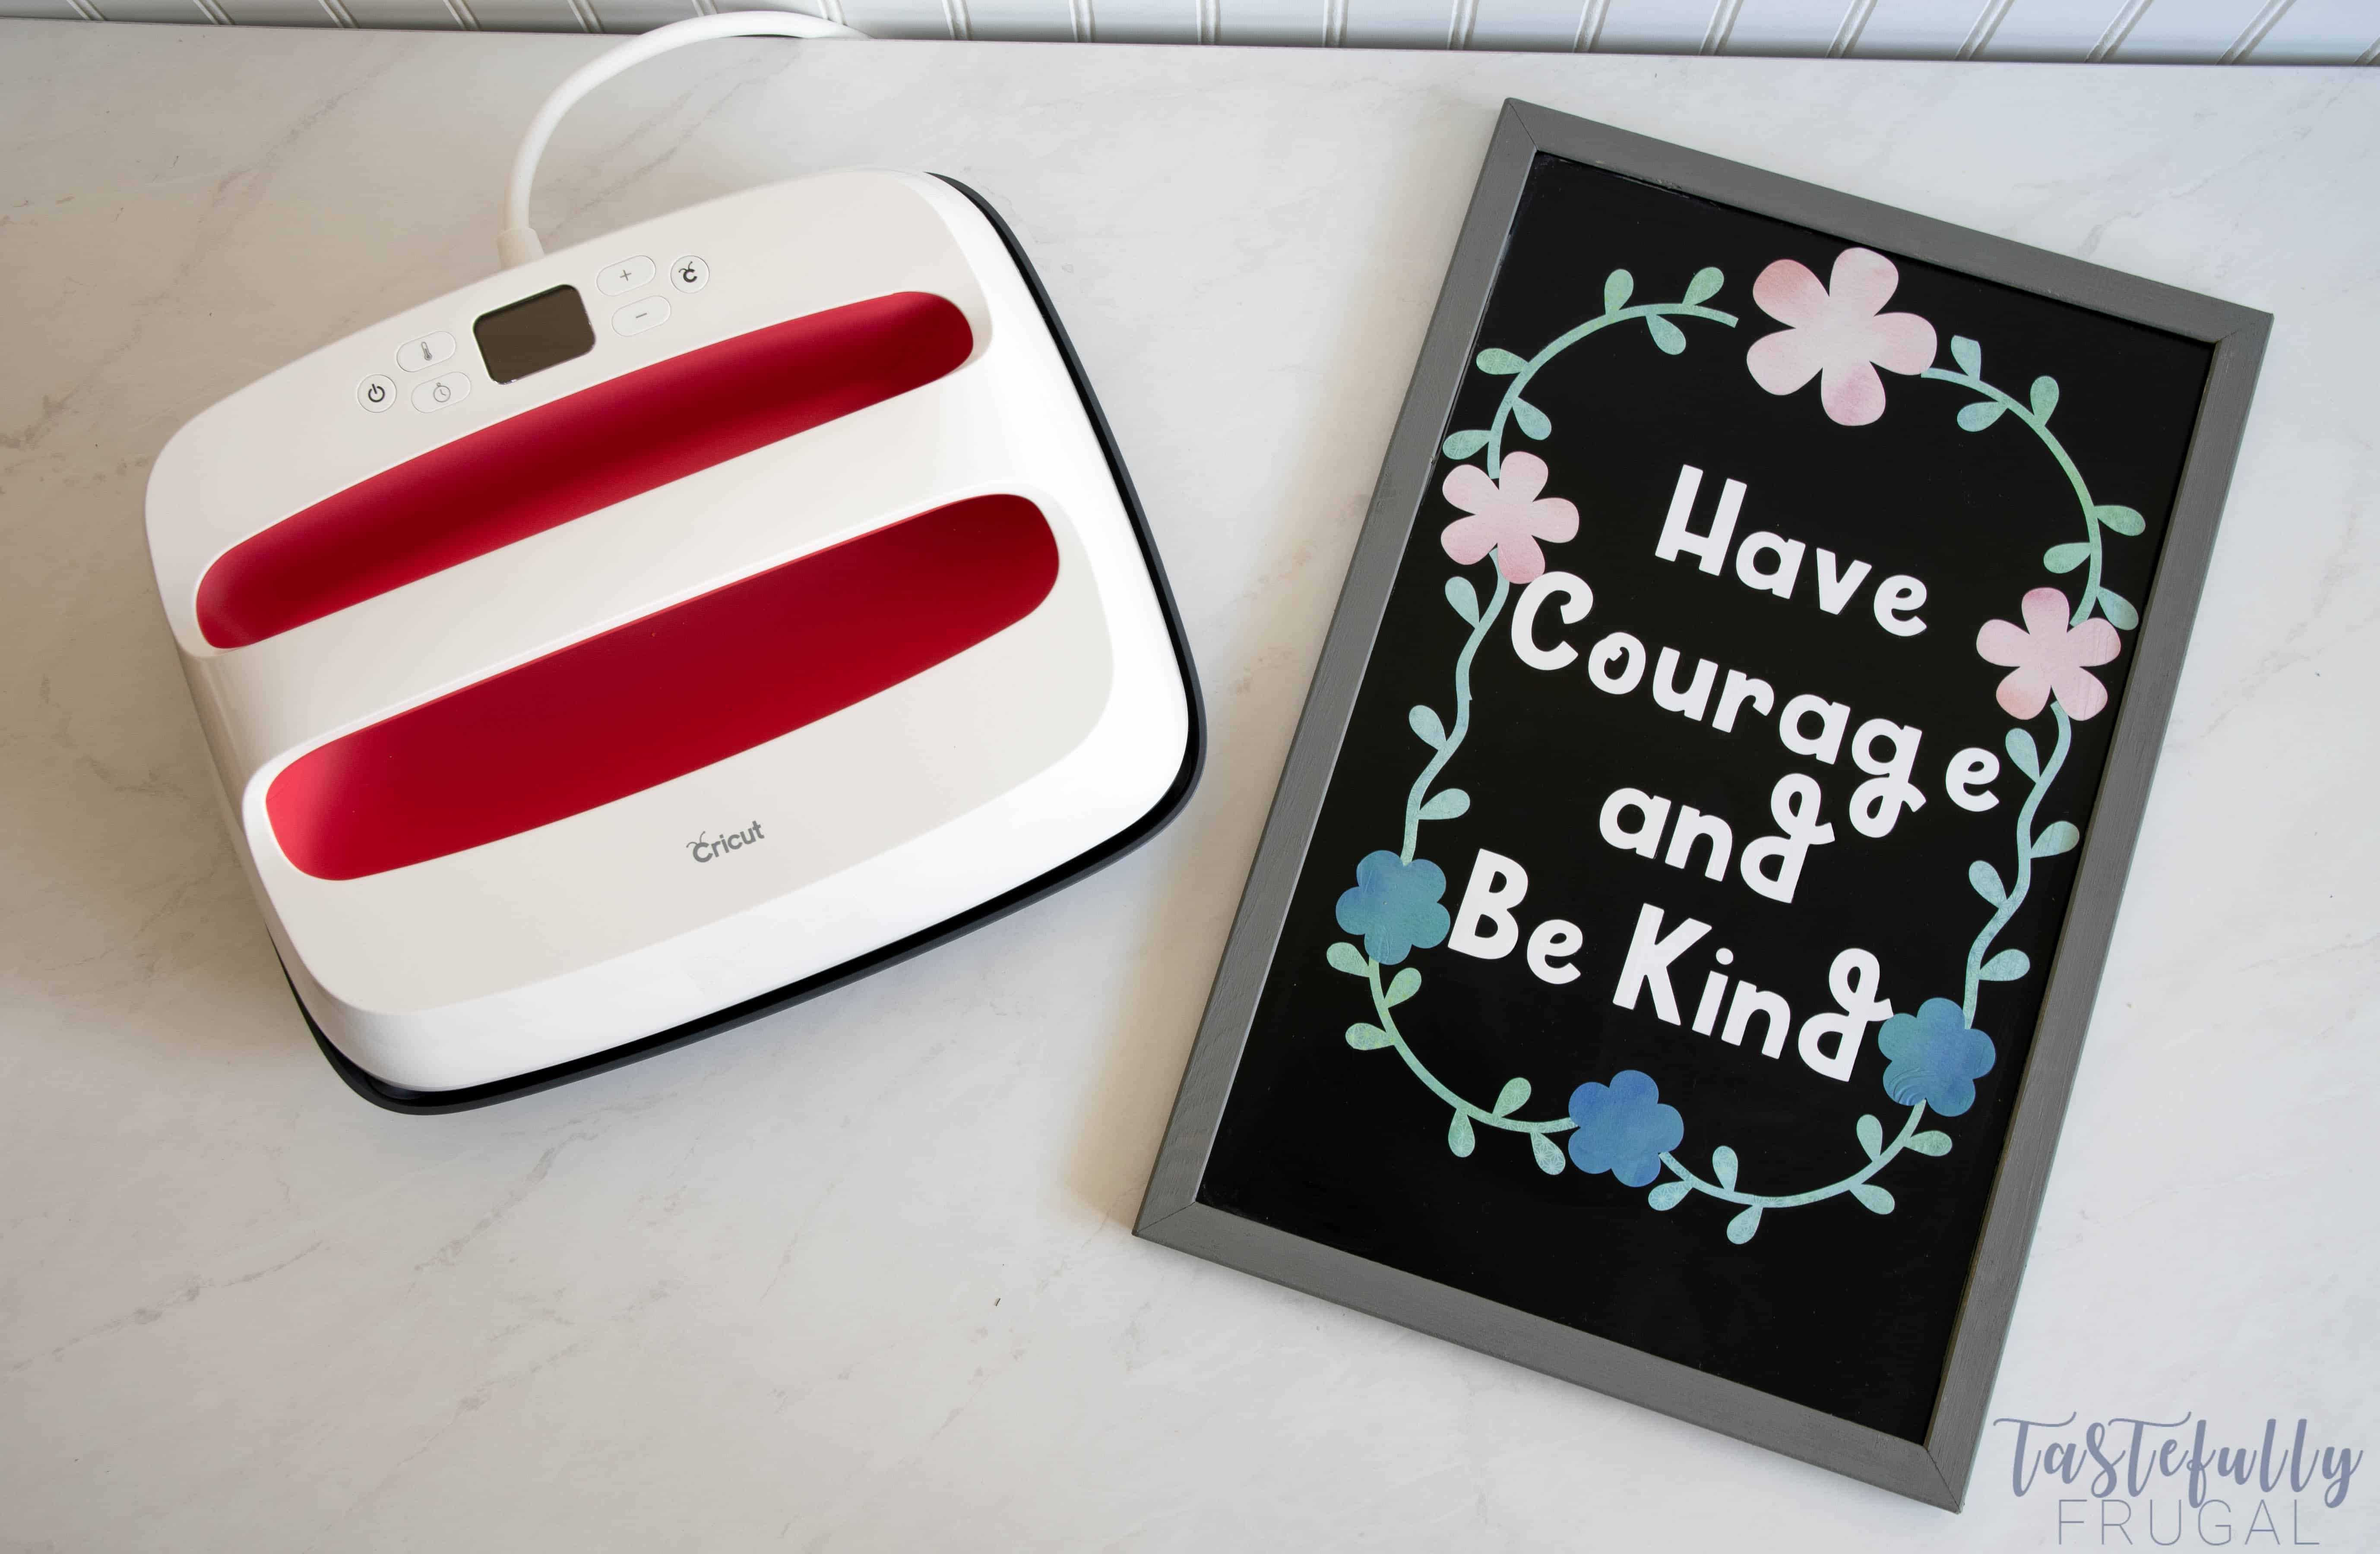 Making inspirational signs is fun anf easy with the Cricut EasyPress 2